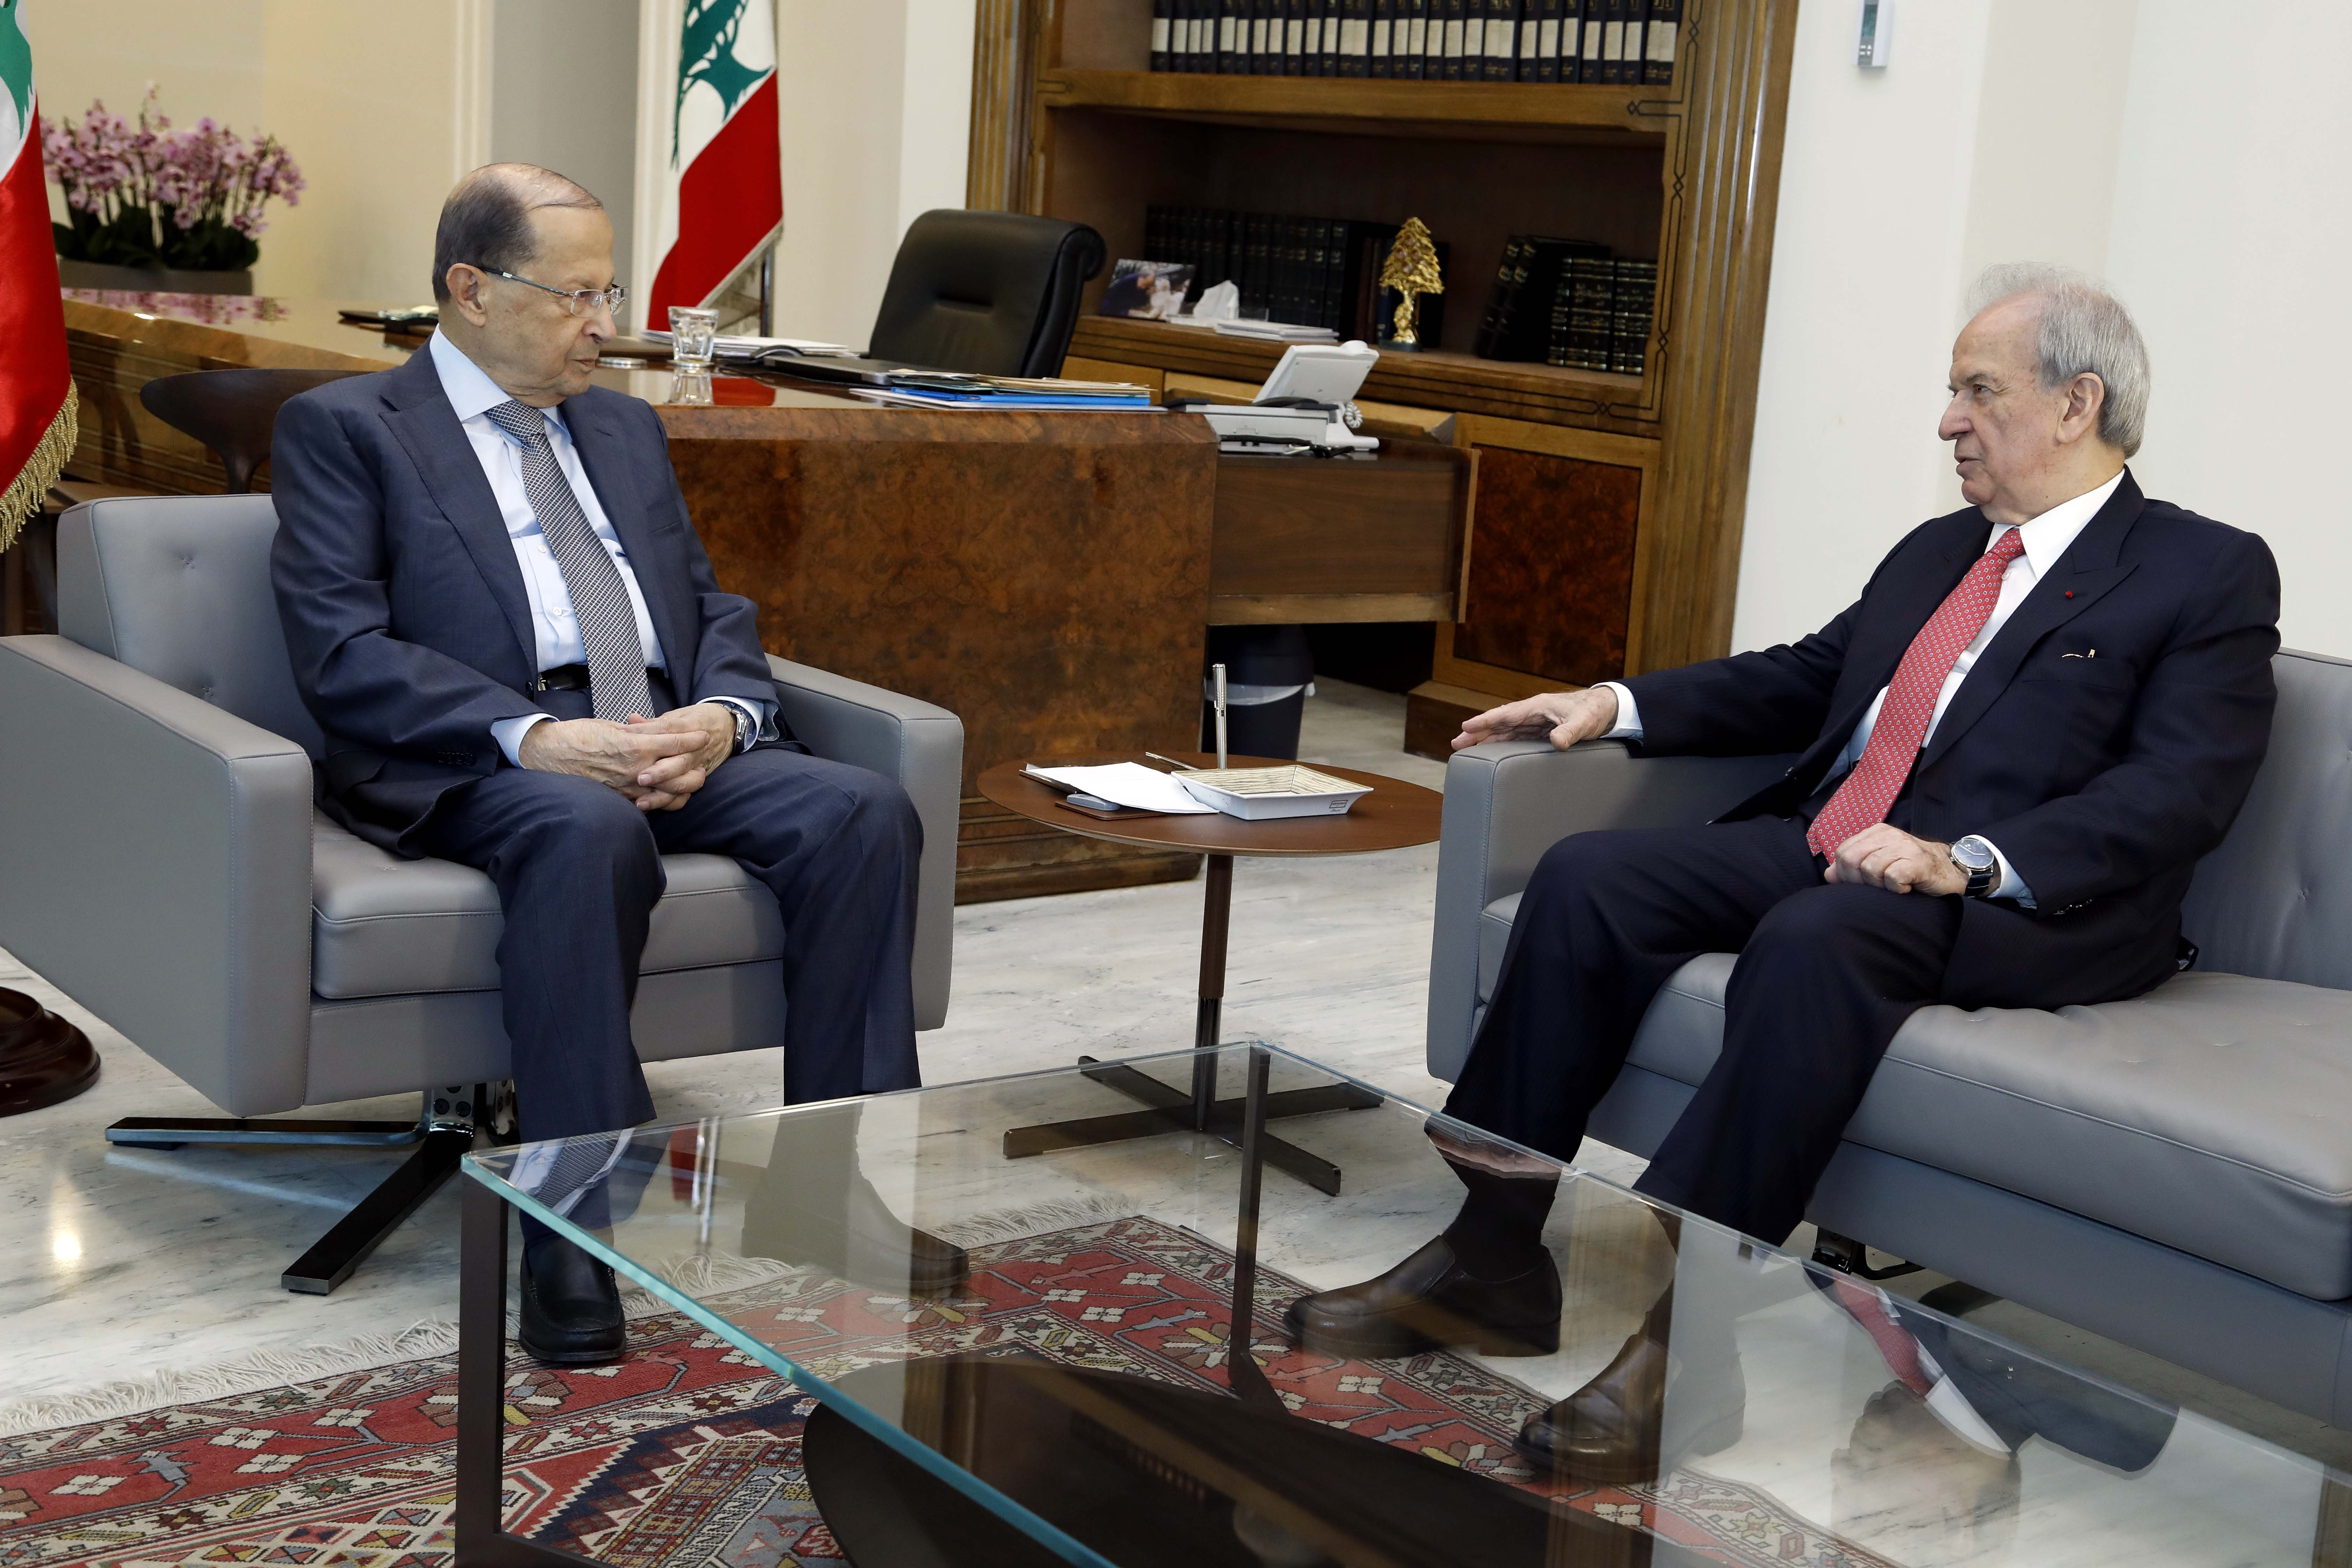 1 - Minister Marwan Hamadeh